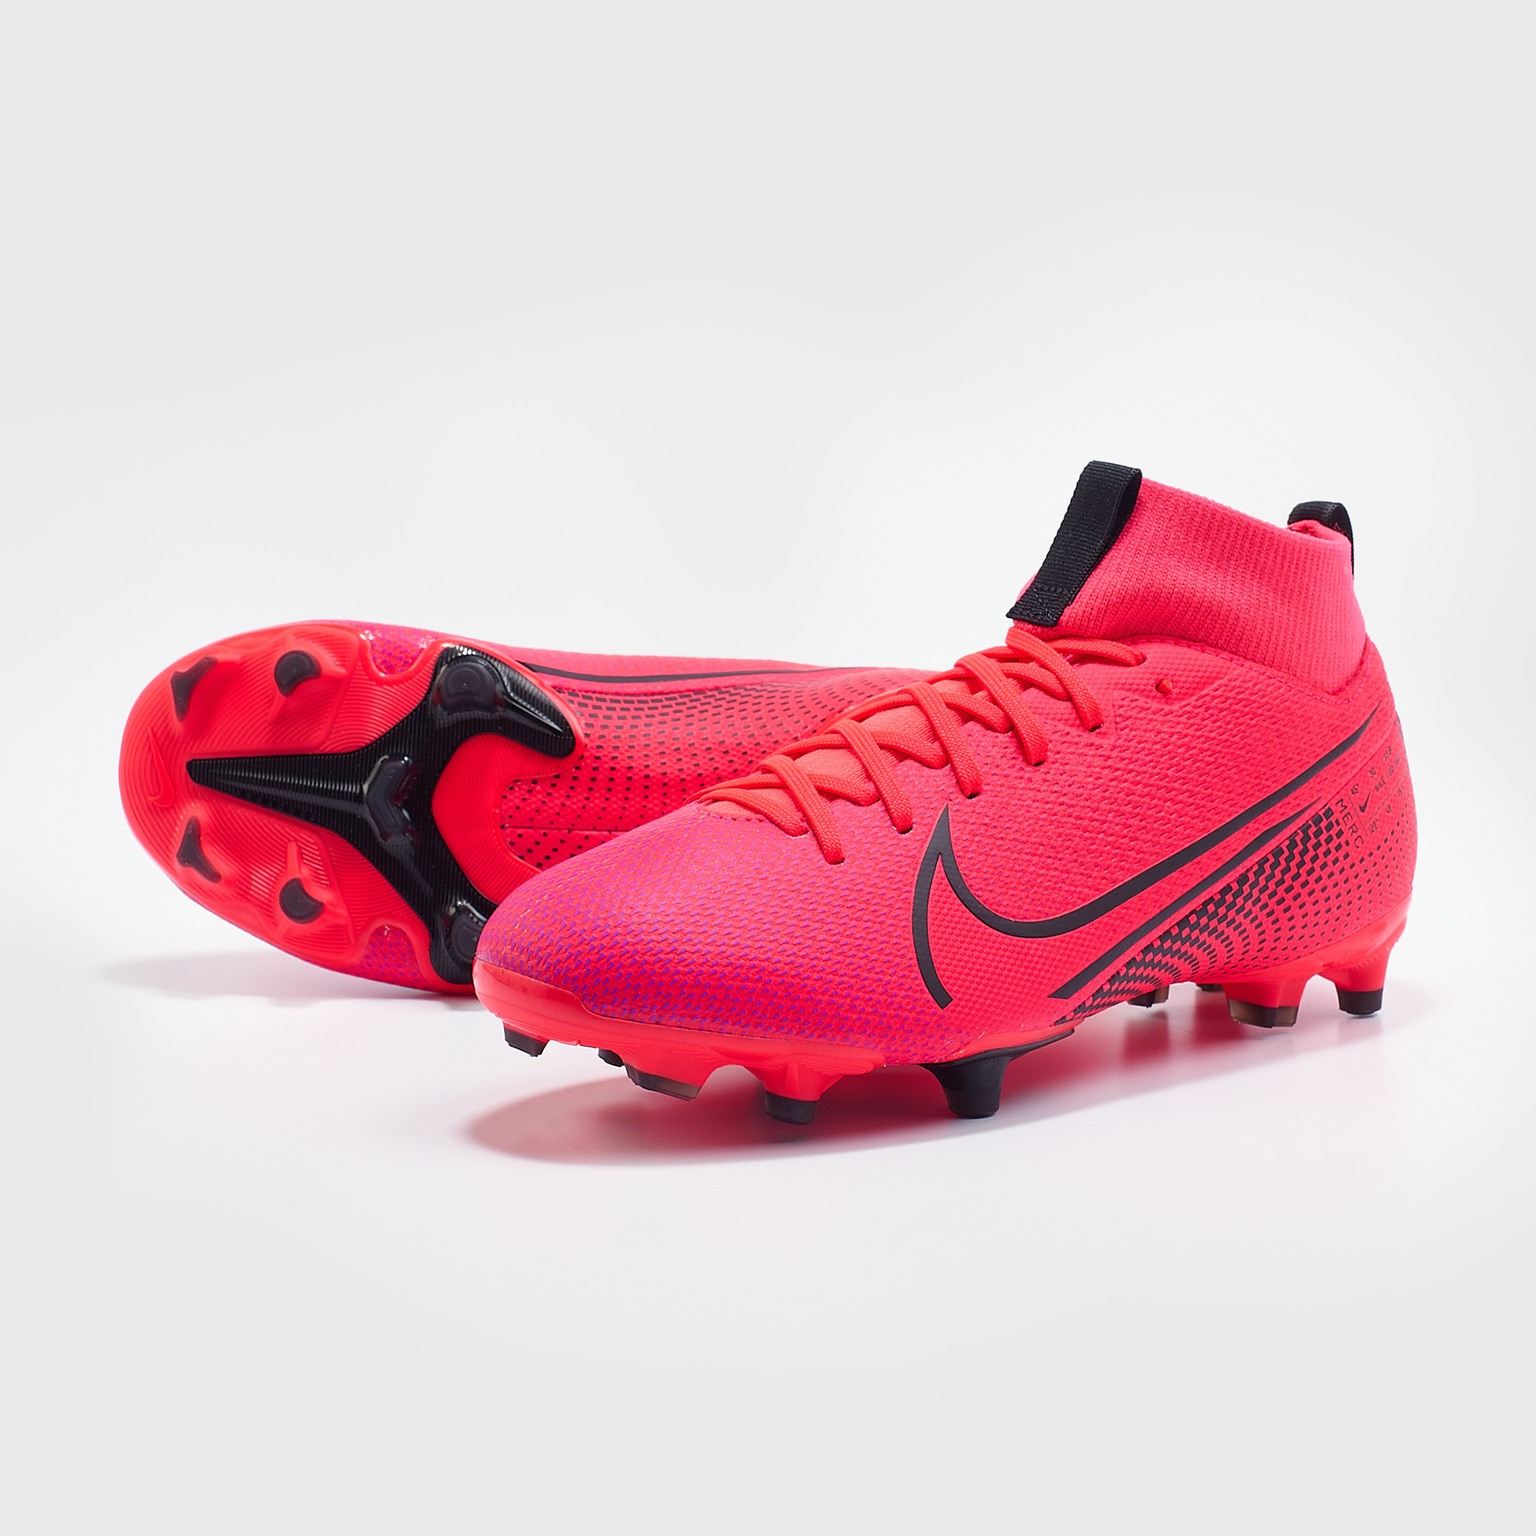 Бутсы детские Nike Superfly 7 Academy FG/MG AT8120-606 бутсы nike superfly 6 club fg mg ah7363 001